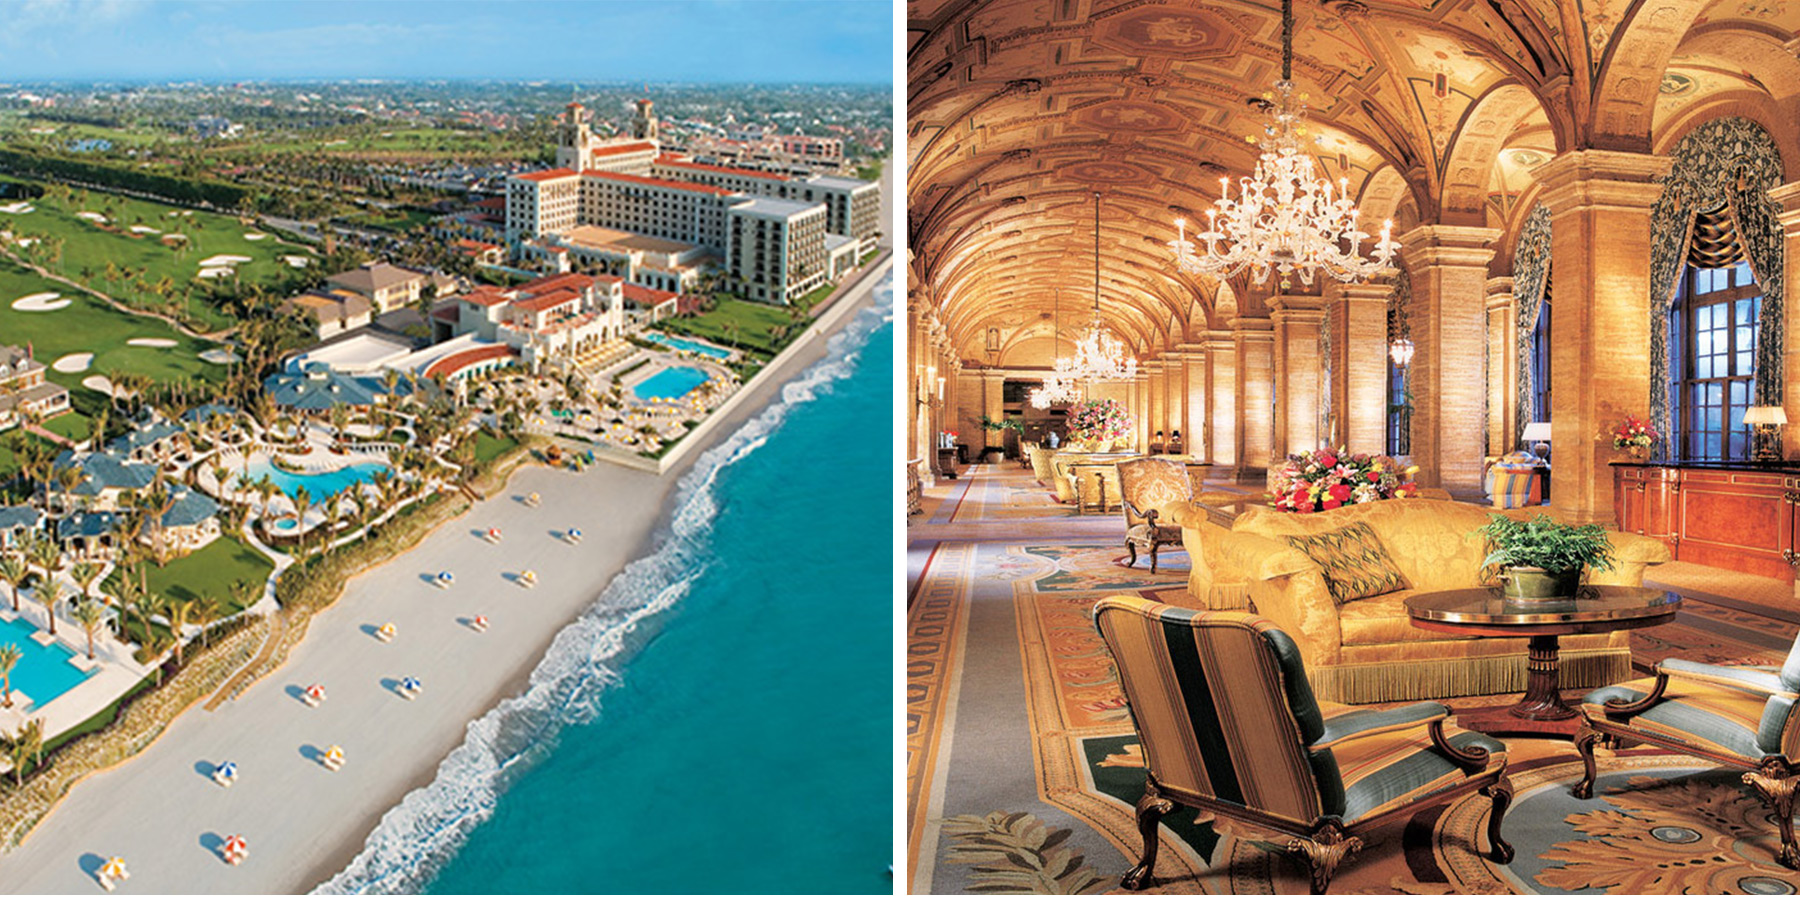 A one-of-a-kind oceanfront resort, The Breakers Palm Beach is one of America's premier destinations for magnificent weddings and celebrations.